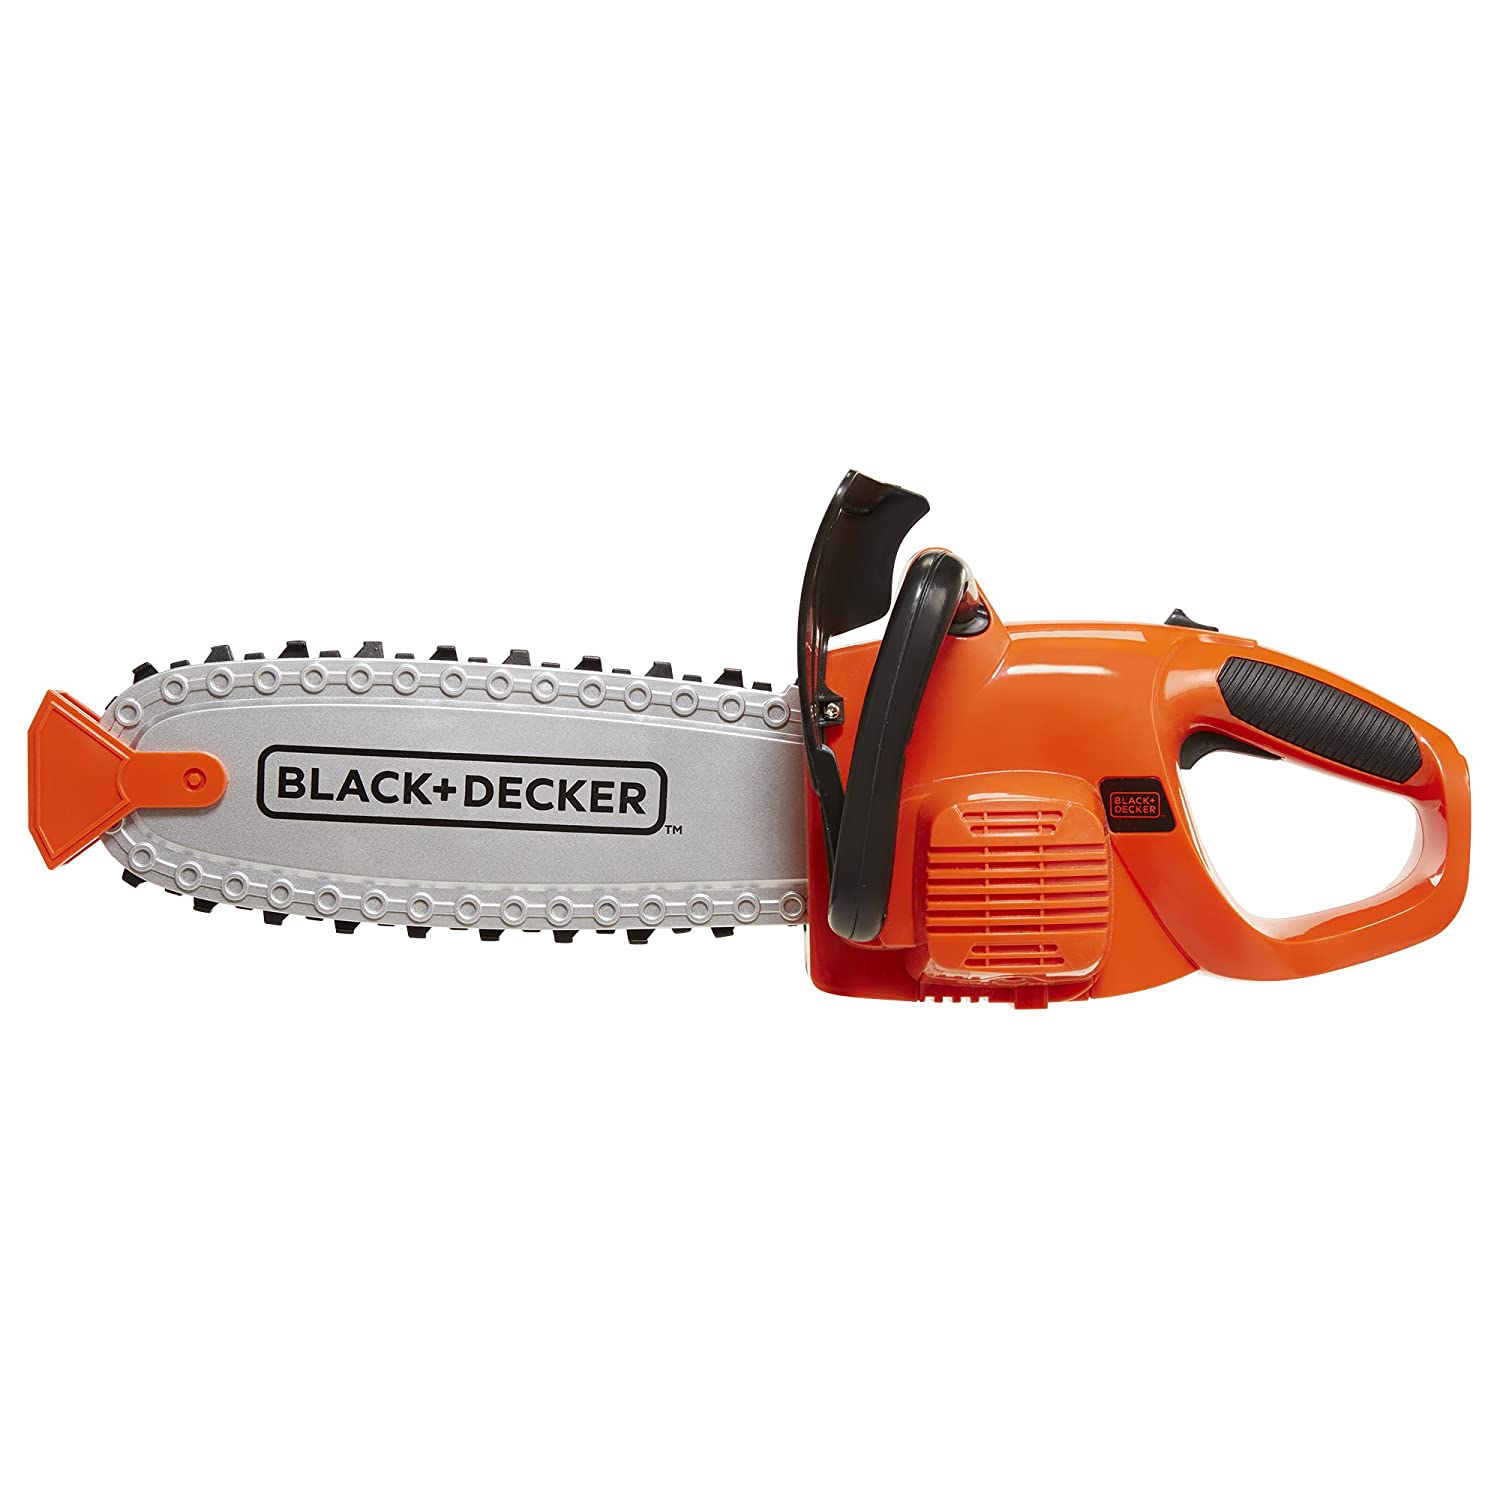 Black decker jr outdoor tool set chainsaw home garden for Gardening tools for 3 year old